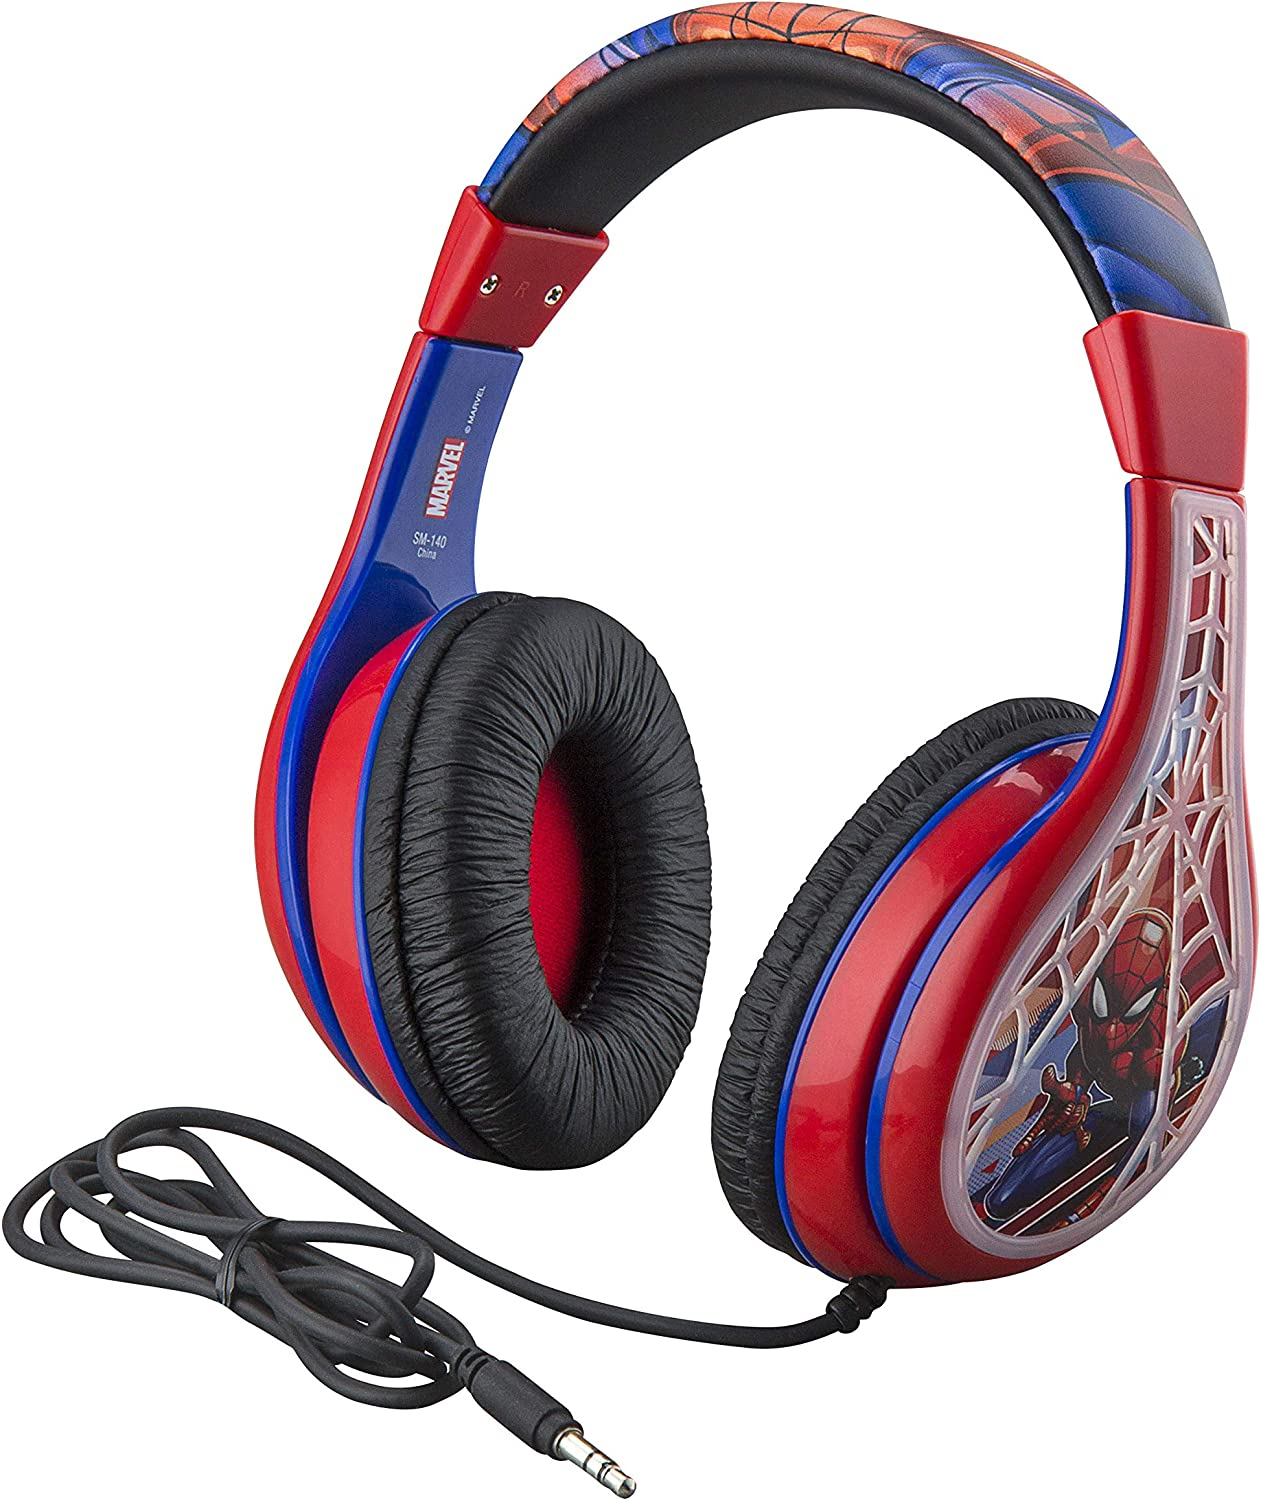 Amazon Com Spider Man Kids Headphones Adjustable Headband Stereo Sound 3 5mm Jack Wired Headphones For Kids Tangle Free Volume Control Foldable Childrens Headphones Over Ear For School Home Travel Toys Games